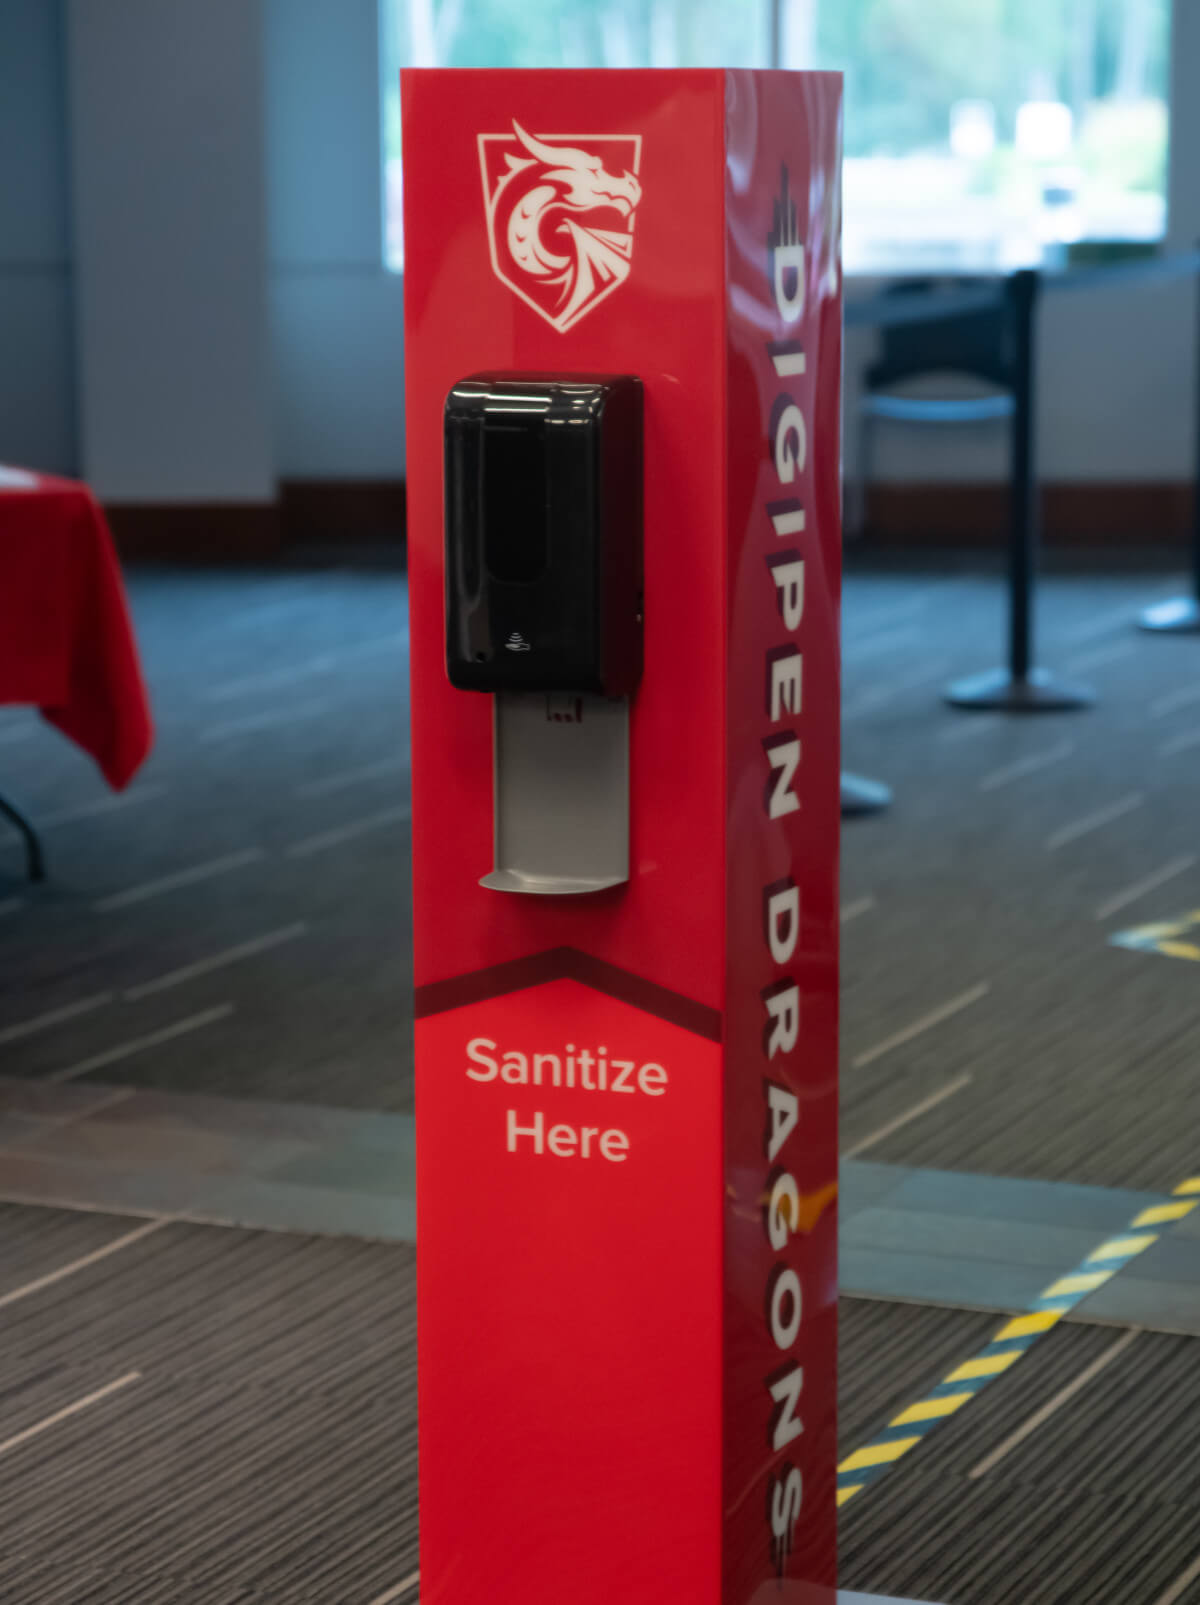 DigiPen campus hand sanitizer station